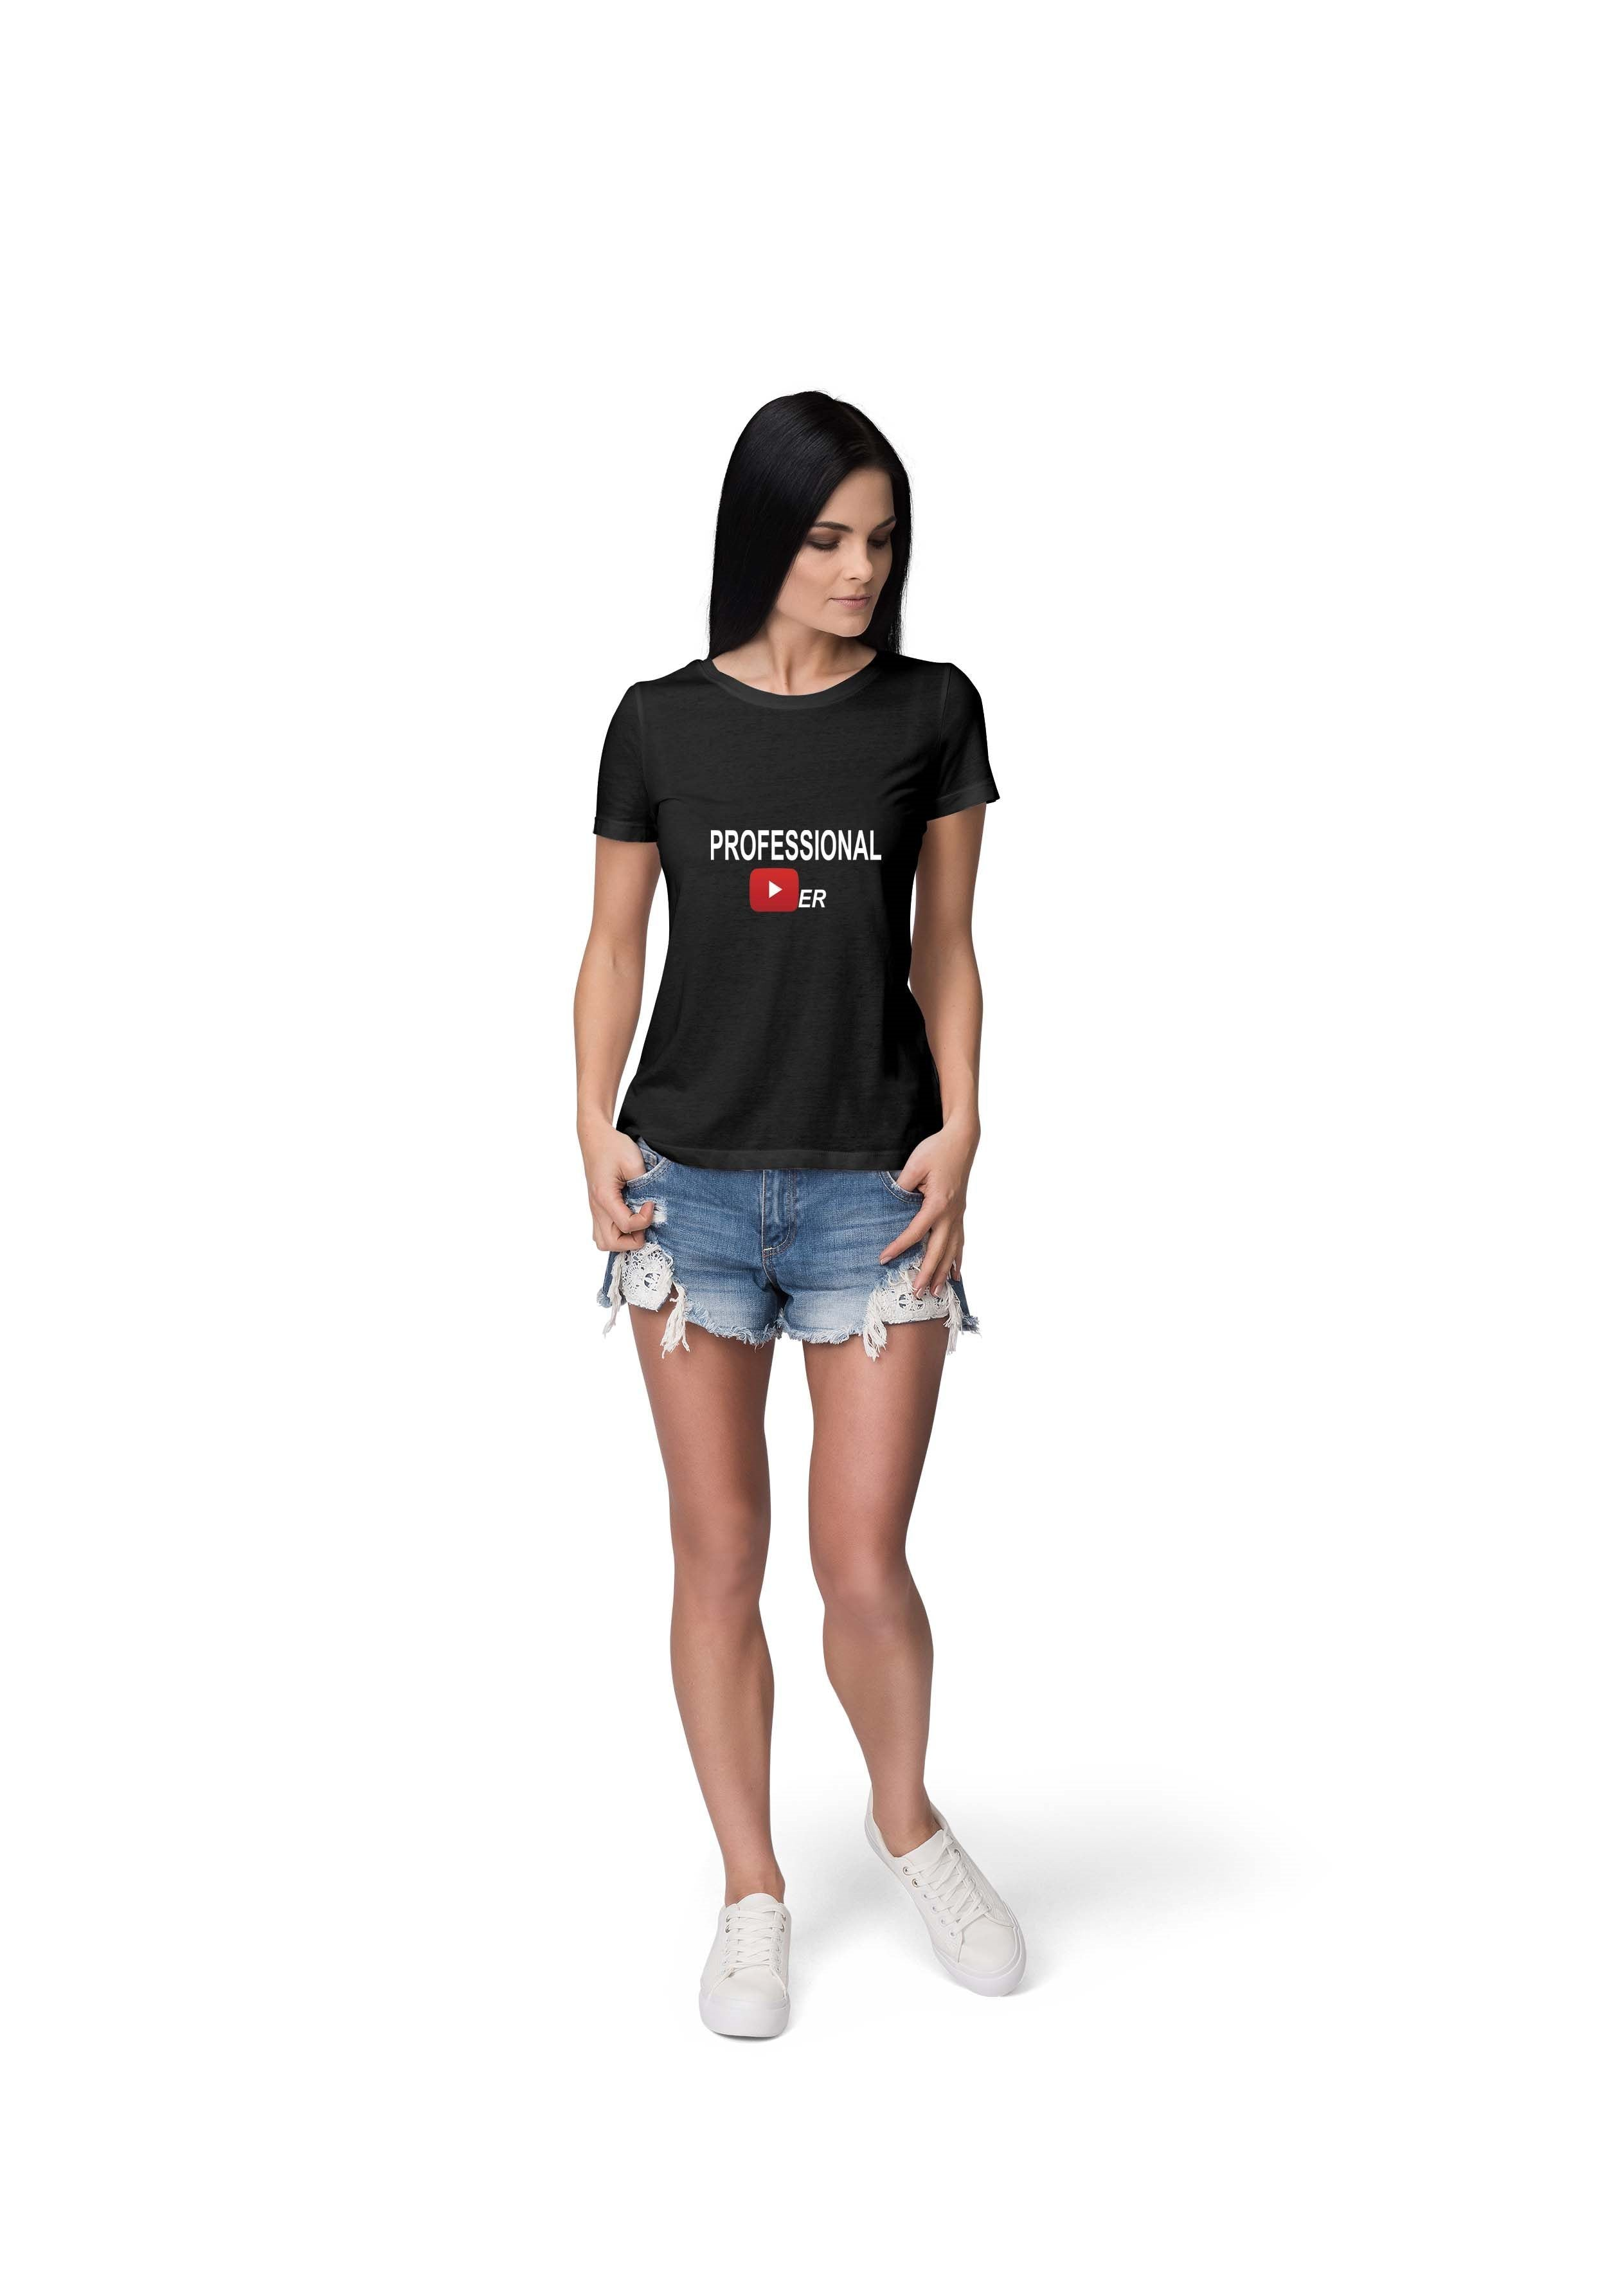 PROFESSIONAL YOUTUBER - WOMEN TSHIRT © - Passion Swap